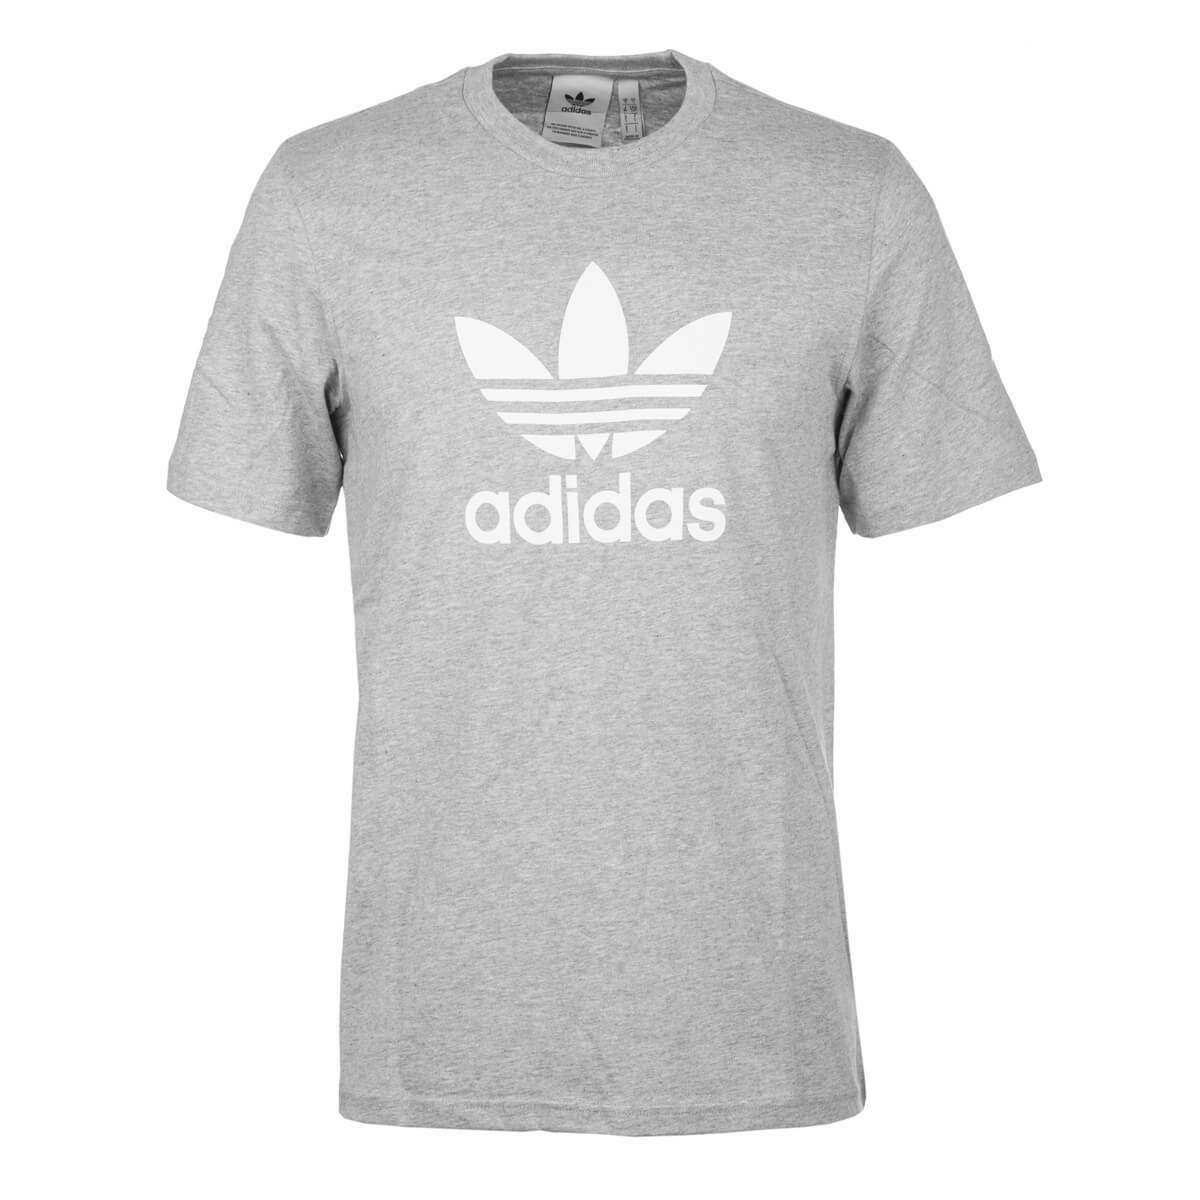 Adidas Trefoil Heather Grey Medium Print Logo with Shirt